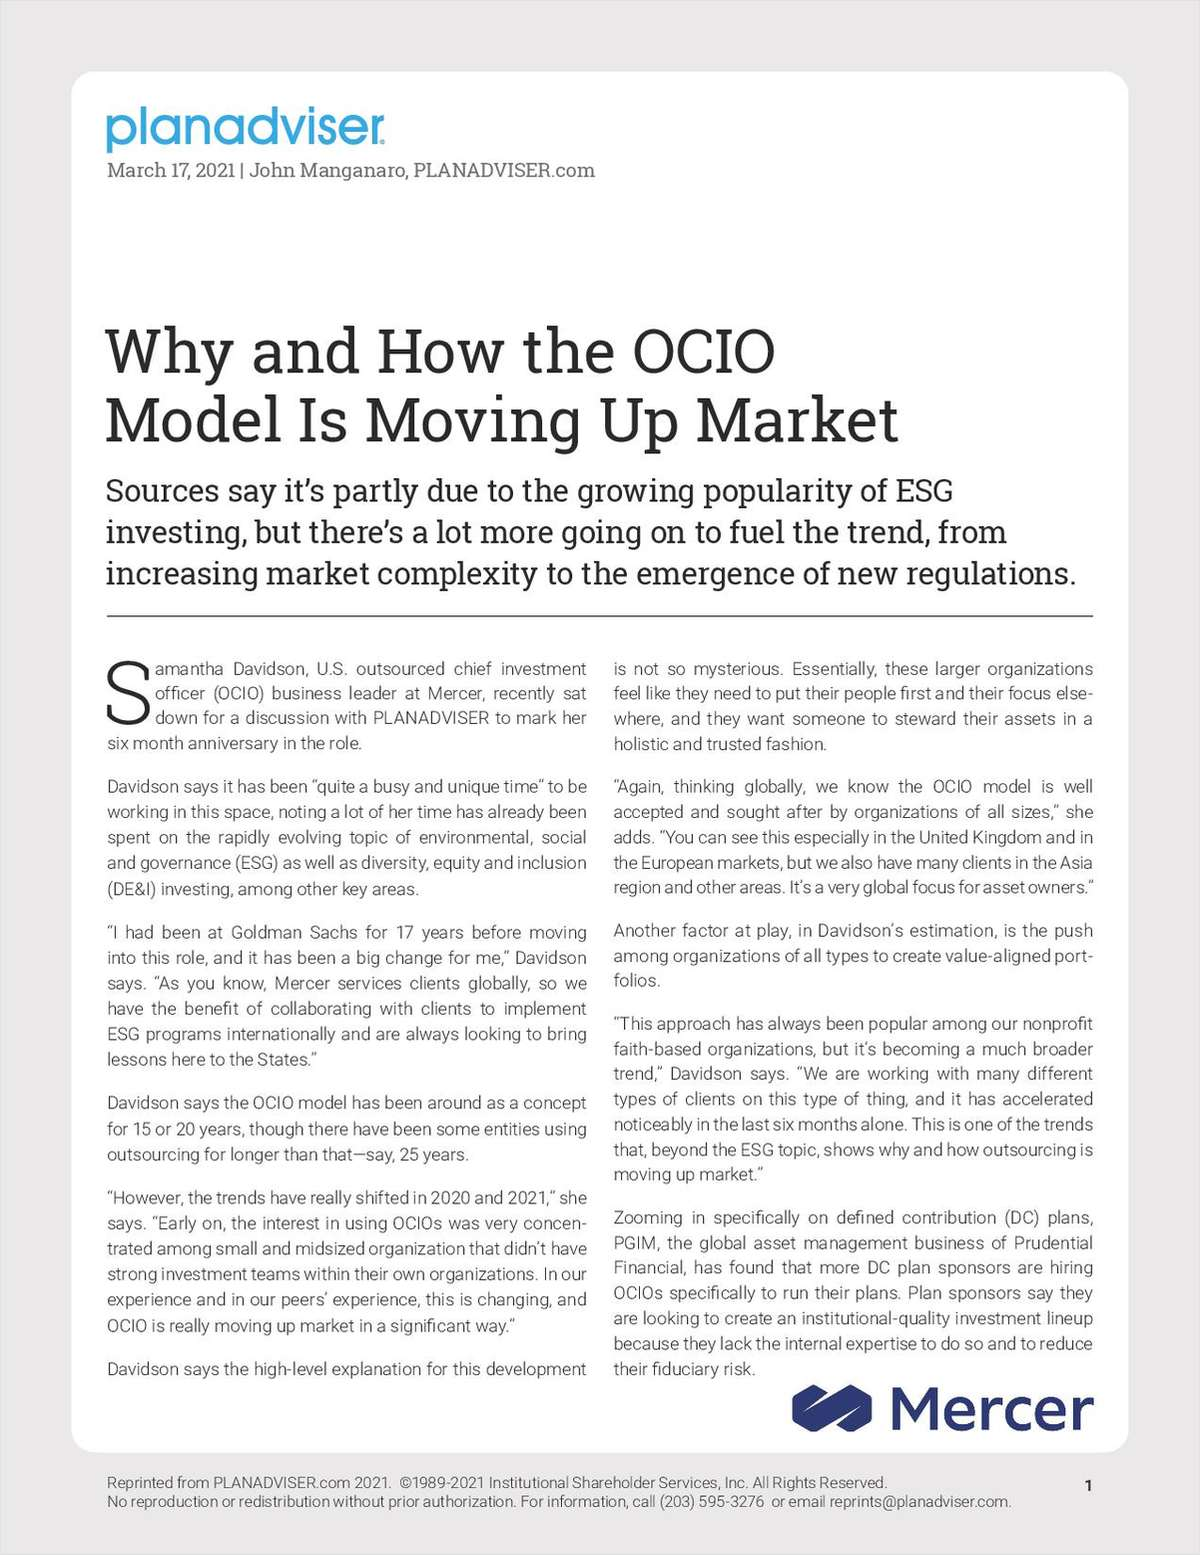 Why and How the OCIO Model Is Moving Up Market